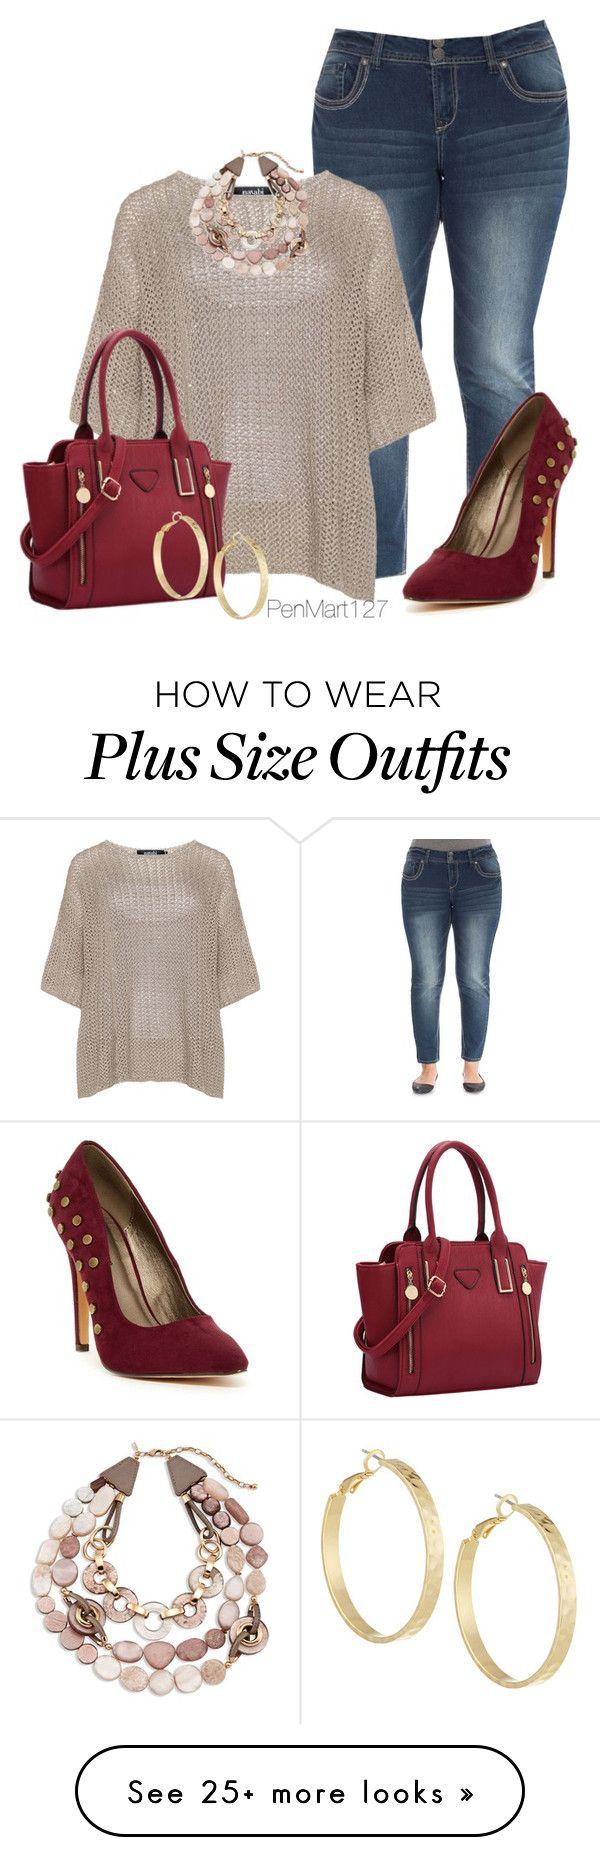 """""""#plussize"""" by penny-martin on Polyvore featuring Michael Antonio, navabi, Panacea, Chico's, women's clothing, women, female, woman, misses and juniors"""